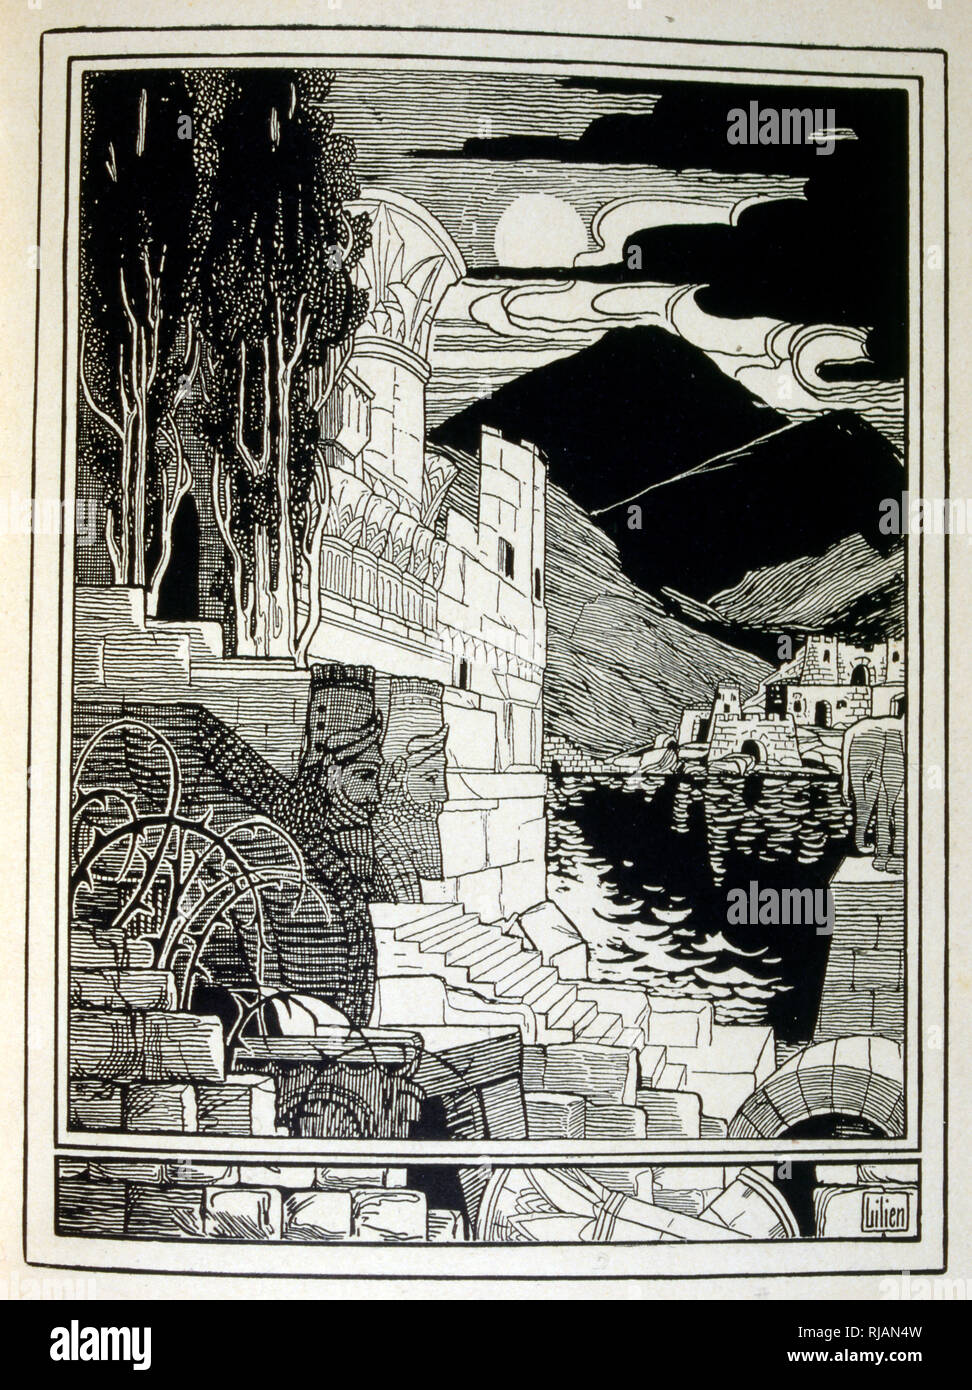 The ruins of Sodom, from the book Judah illustrated by Ephraim Moses Lilien (1874-1925). Lilian is considered as the father of Zionist iconography, created in the Jugendstil (German art nouveau) style.  He illustrated' Juda' (1900), a book of biblical poetry by a Christian friend, Borries Freiherr von Munchausen.' - Stock Image